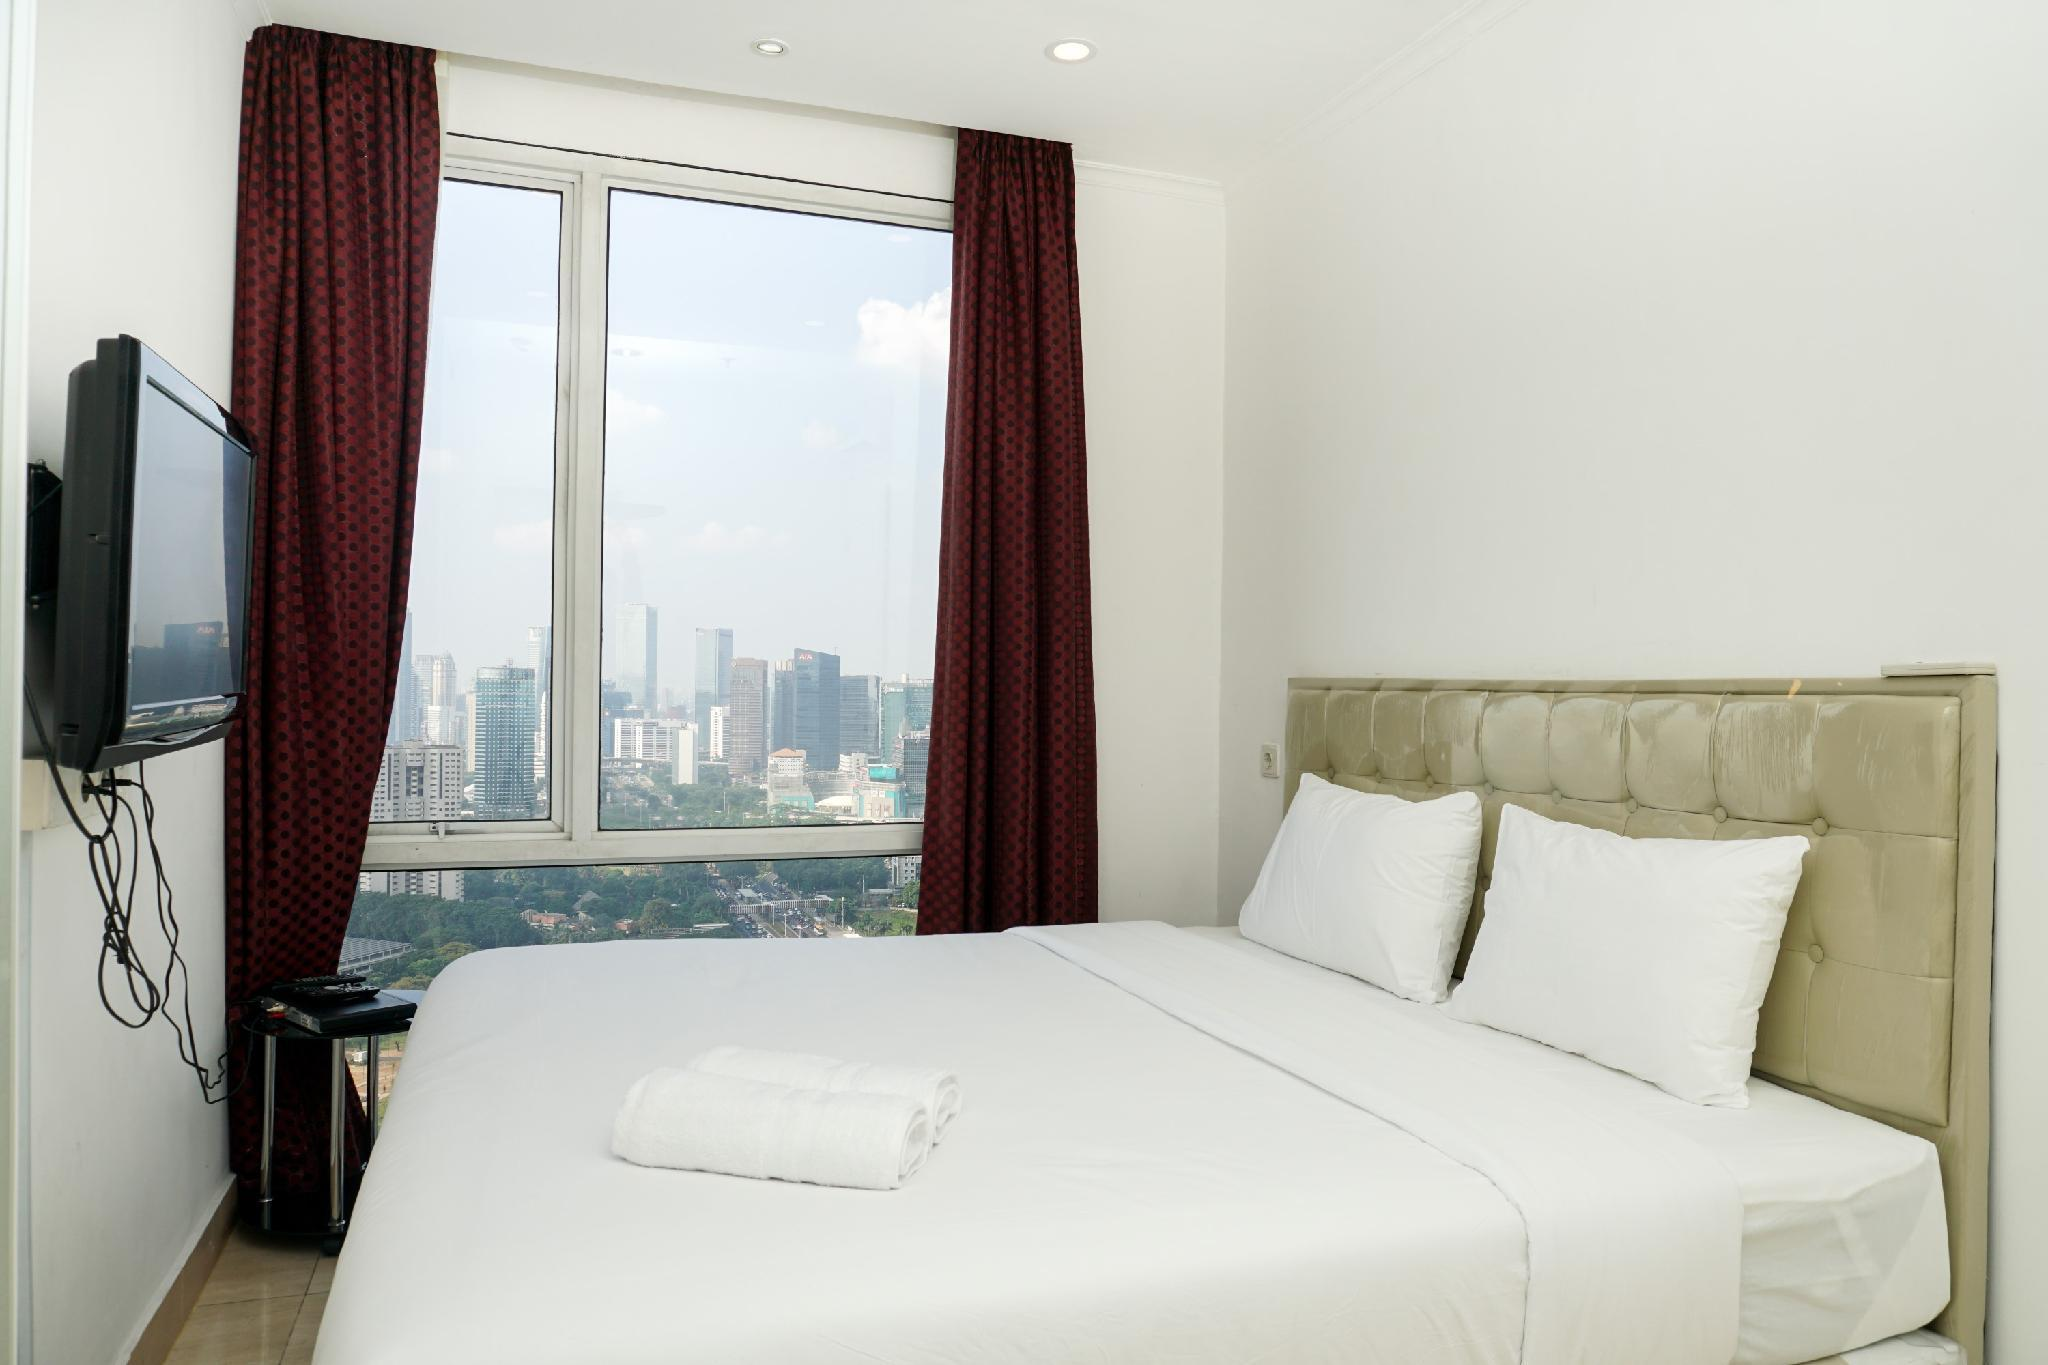 3BR Apartment At FX Residence Sudirman By Travelio